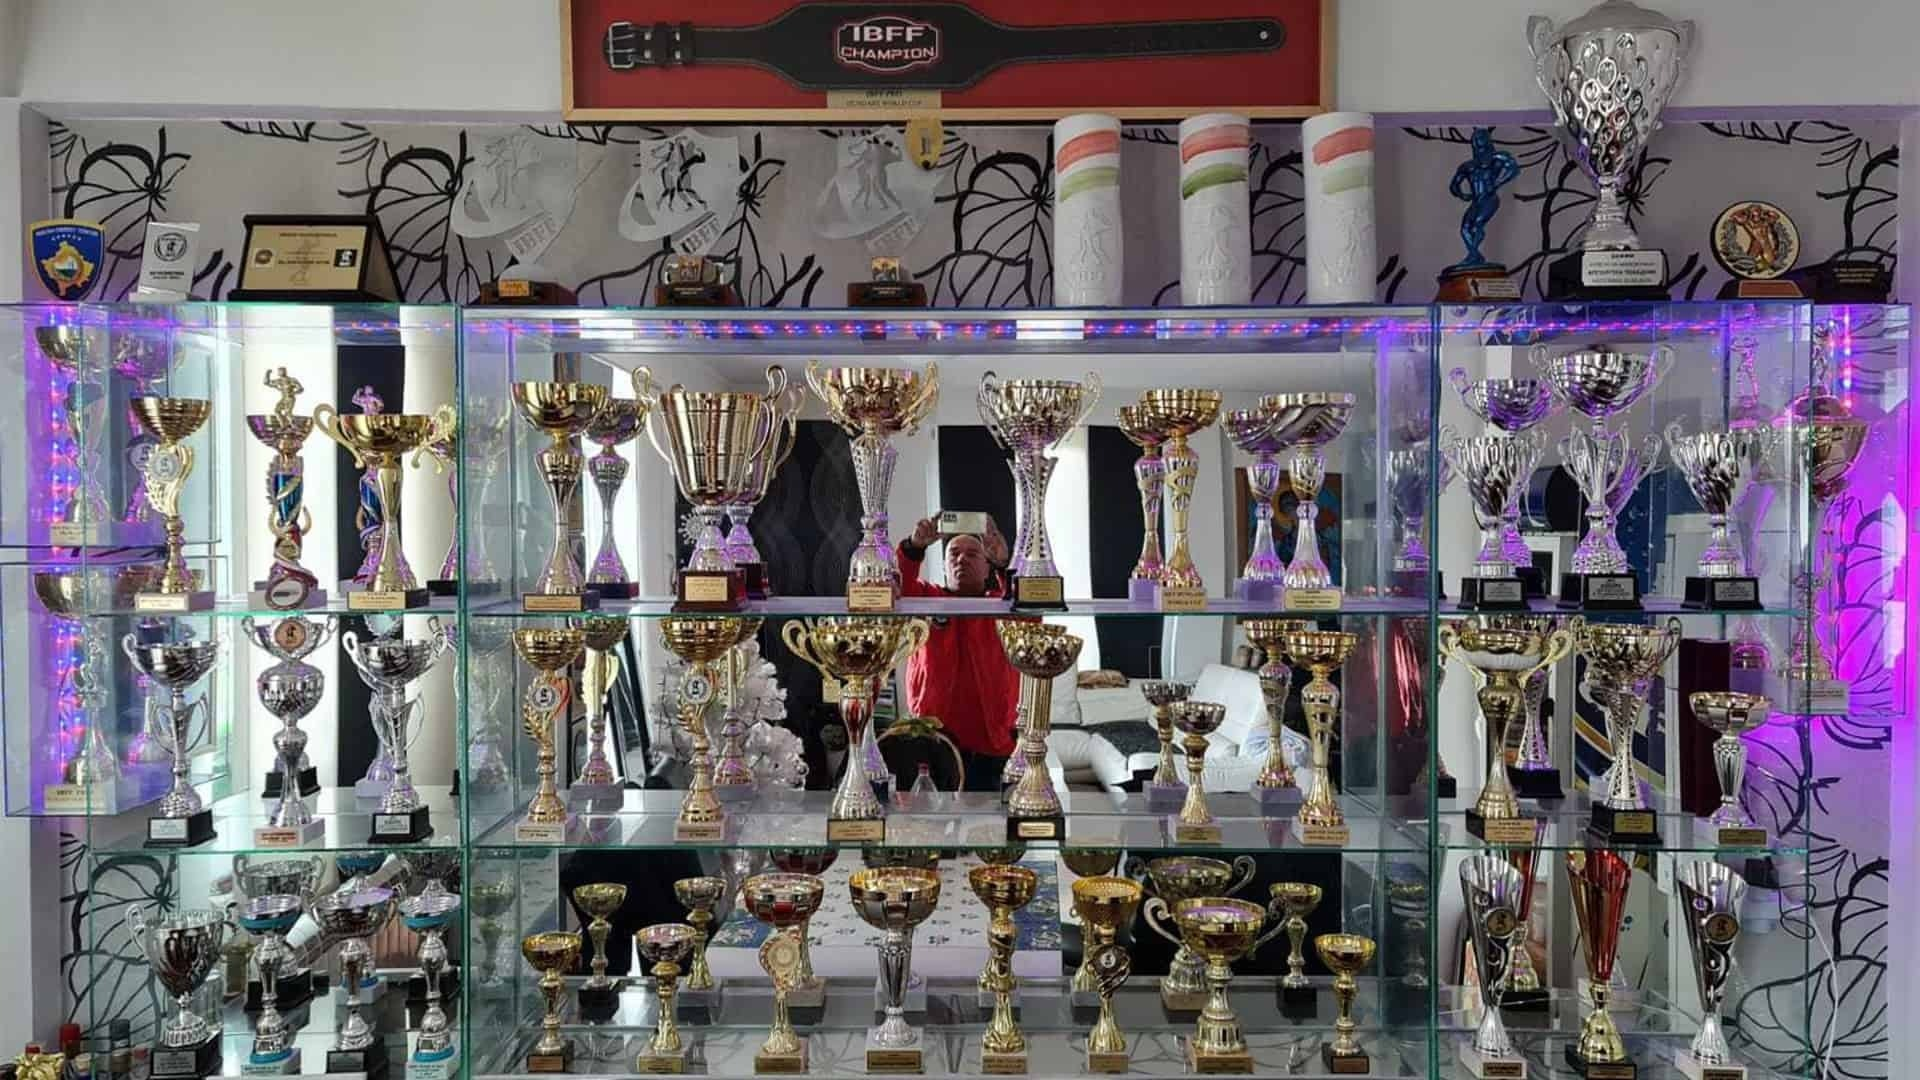 The trophies Tose Zafirov has acquired and won throughout the years, on a shell in his house, with a mirror behind them.